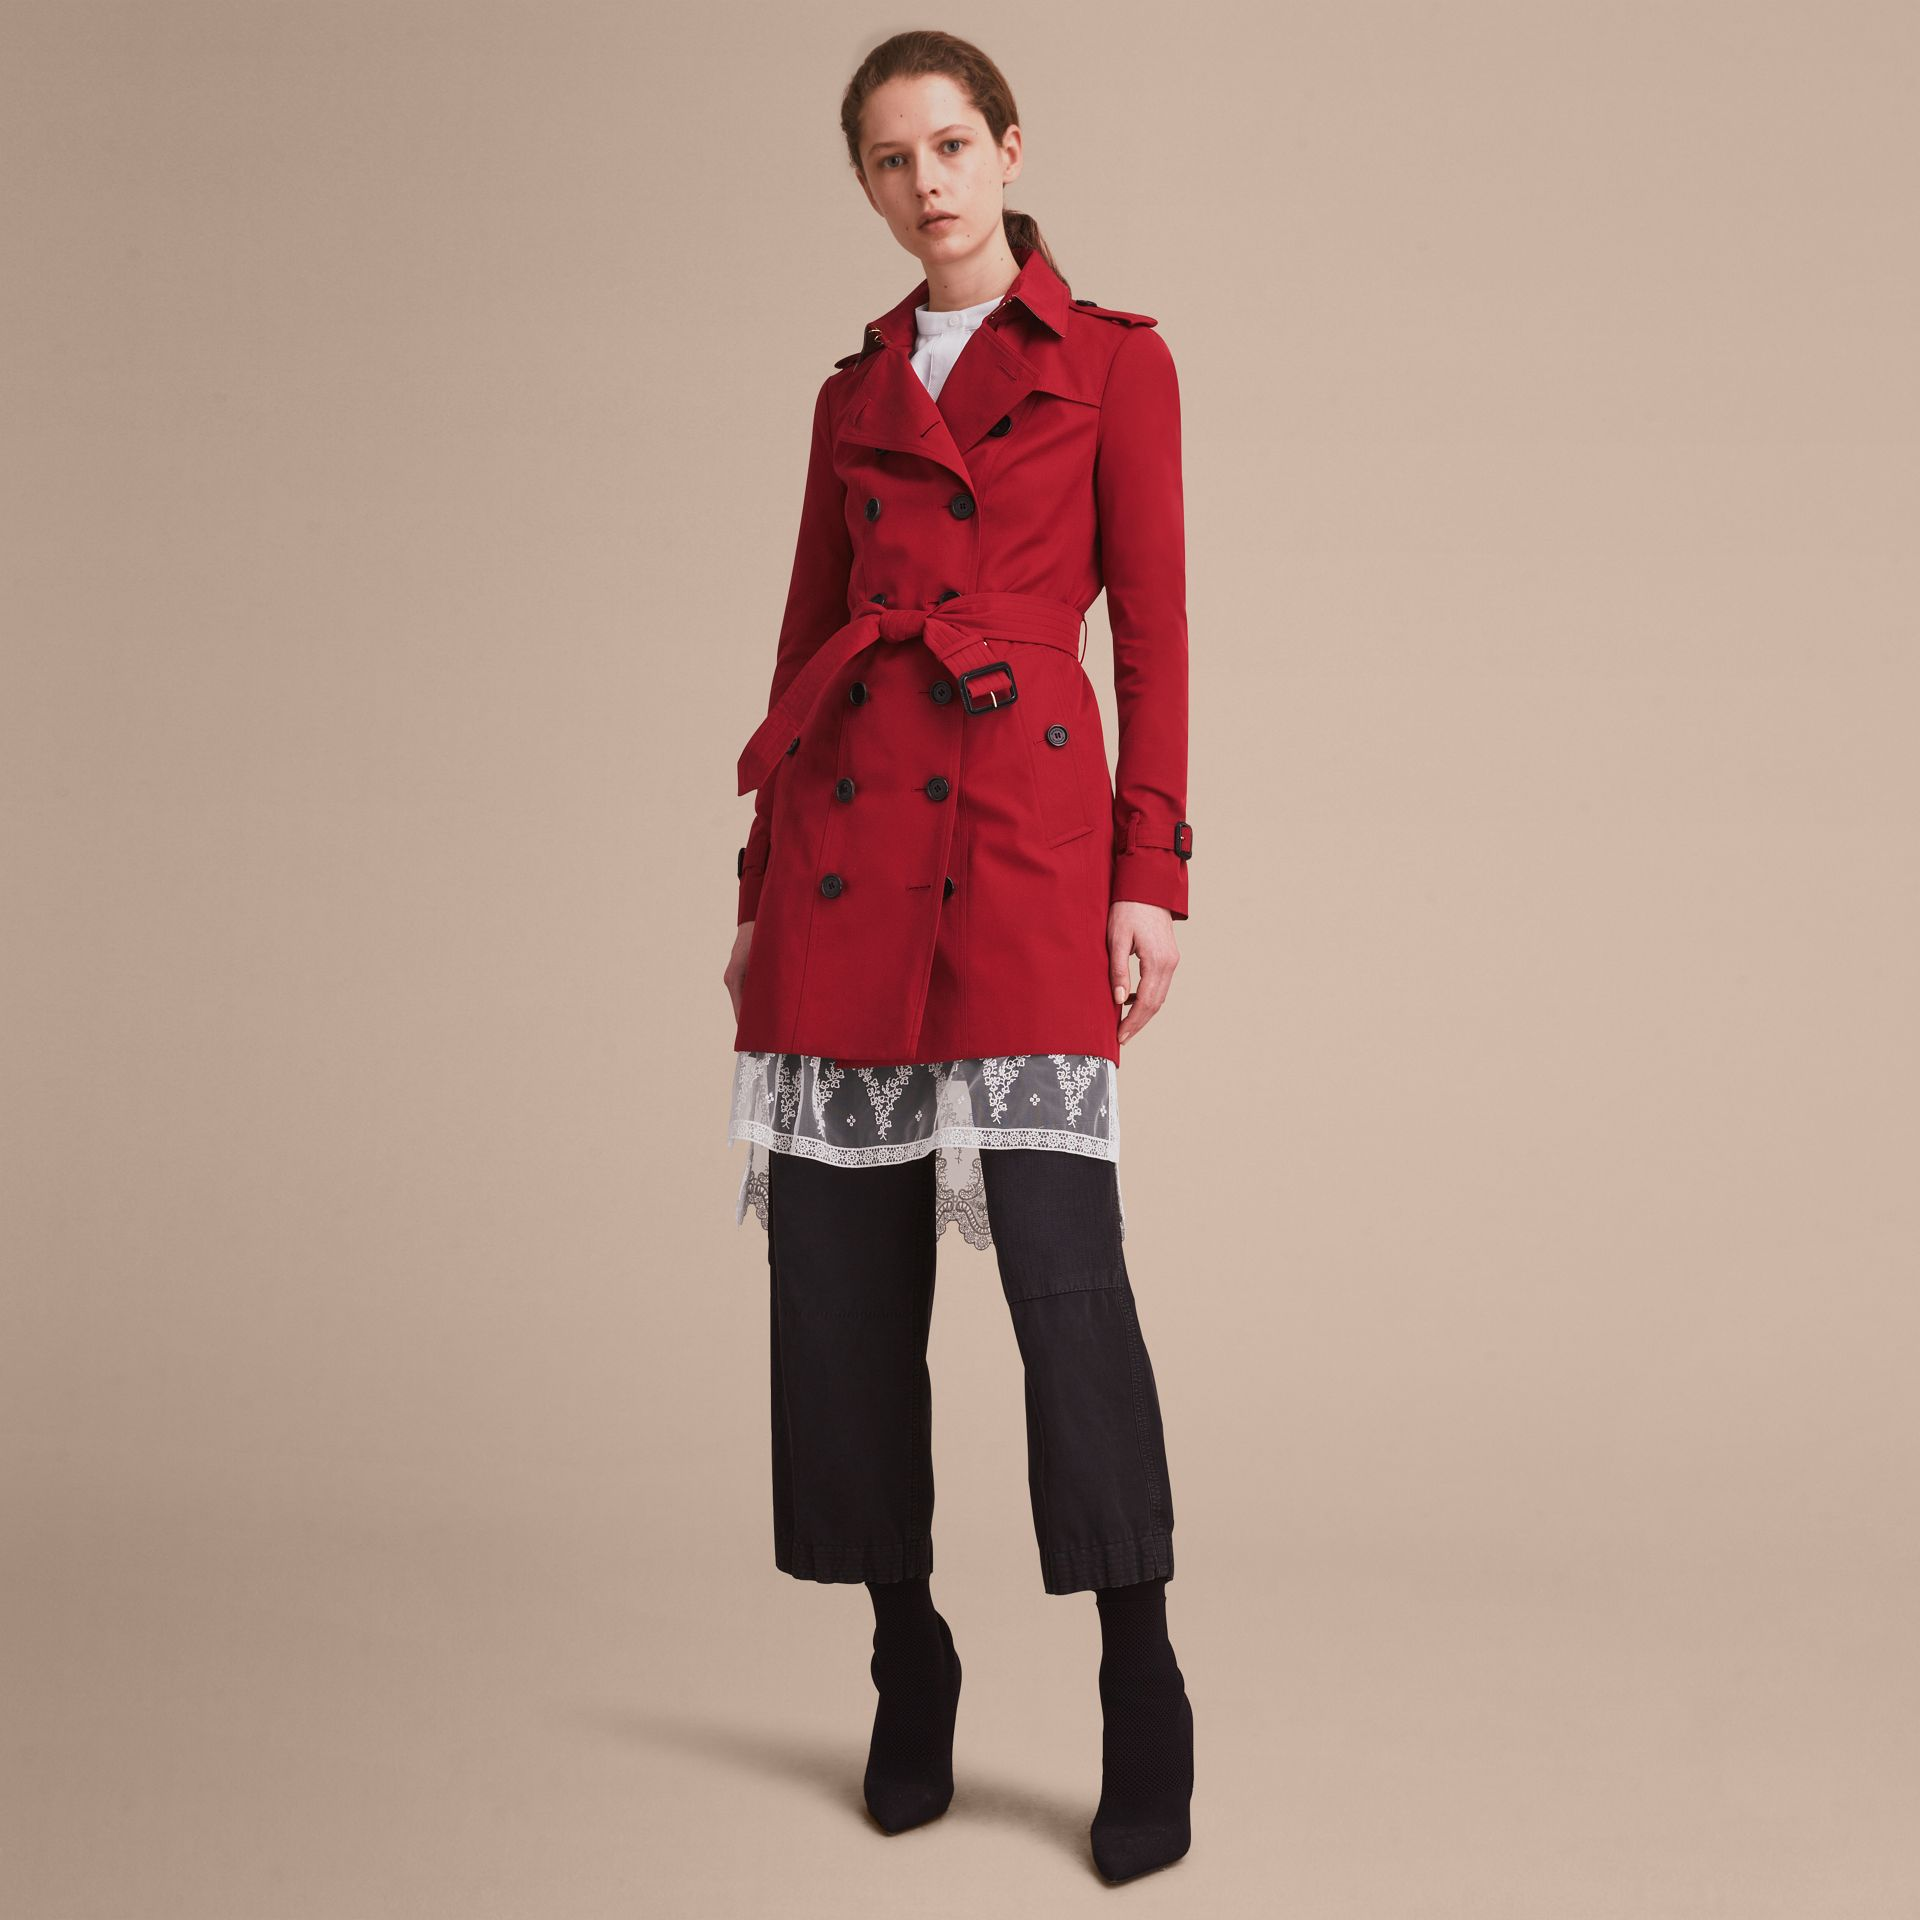 The Sandringham – Mid-length Heritage Trench Coat in Parade Red - Women | Burberry - gallery image 1